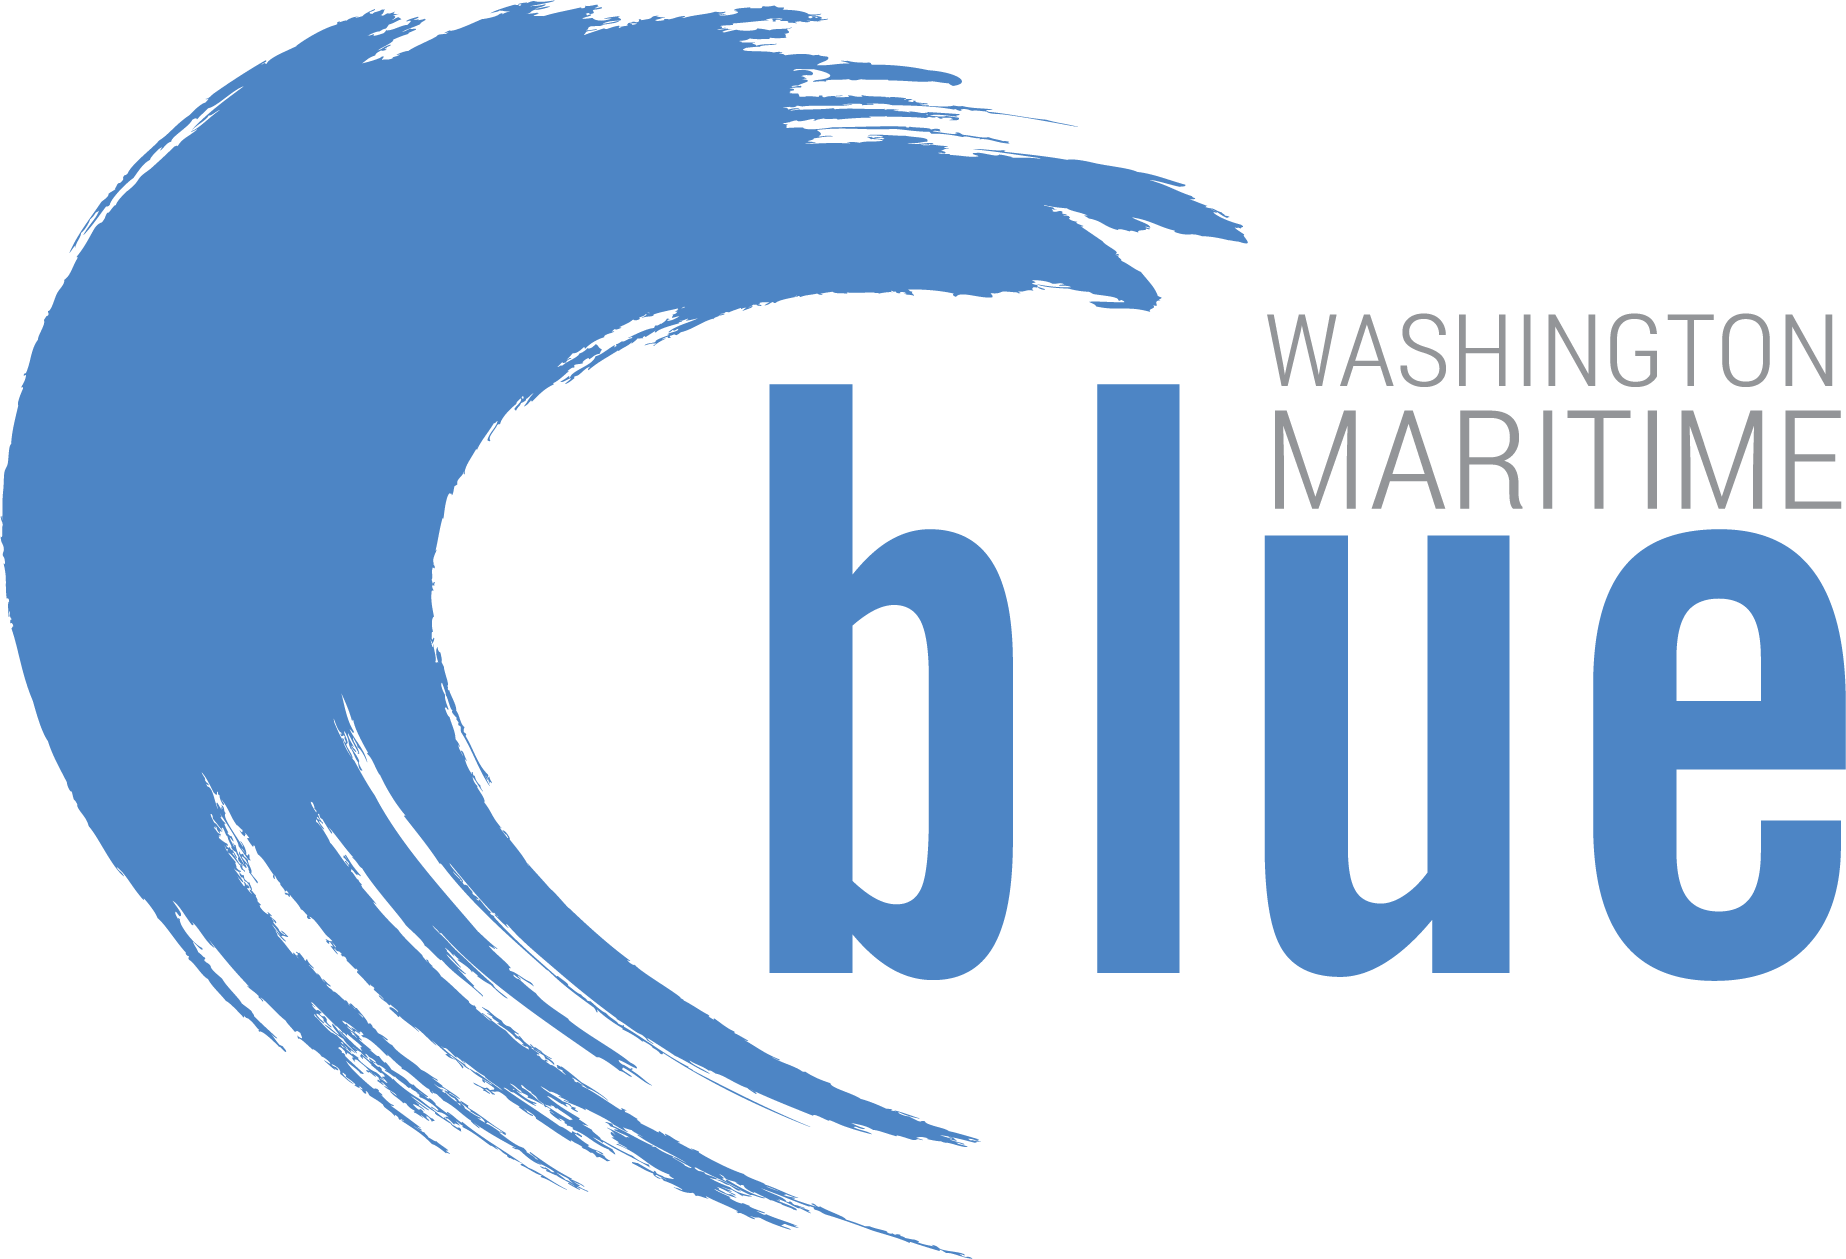 Washington Maritime Blue